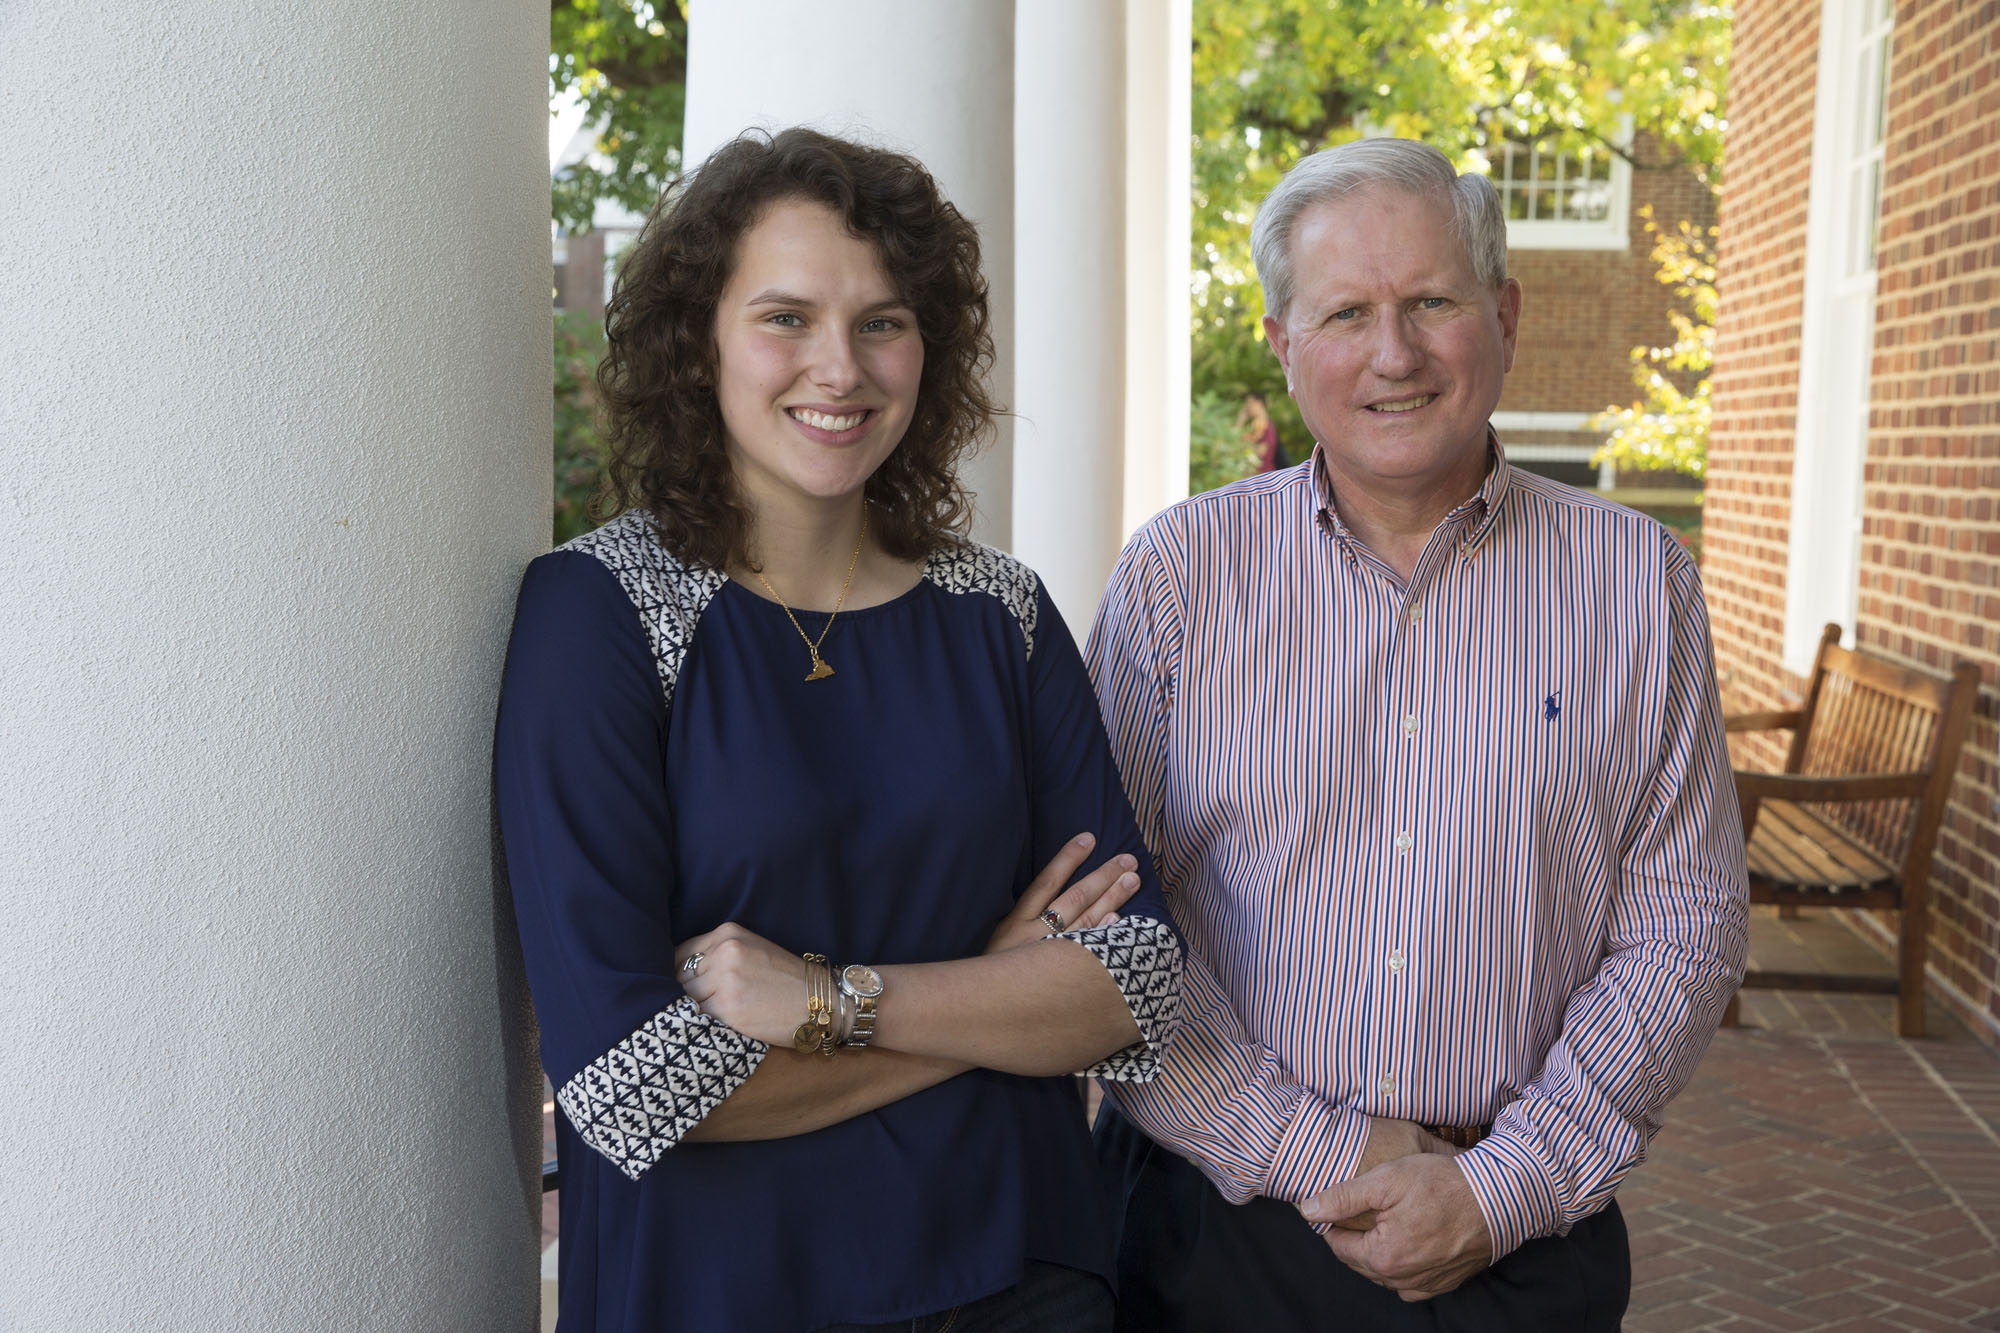 Third-year student Caroline Bauserman and attorney Roger Briney are one of many student-alumni pairs matched through the Virginia Alumni Mentoring program.